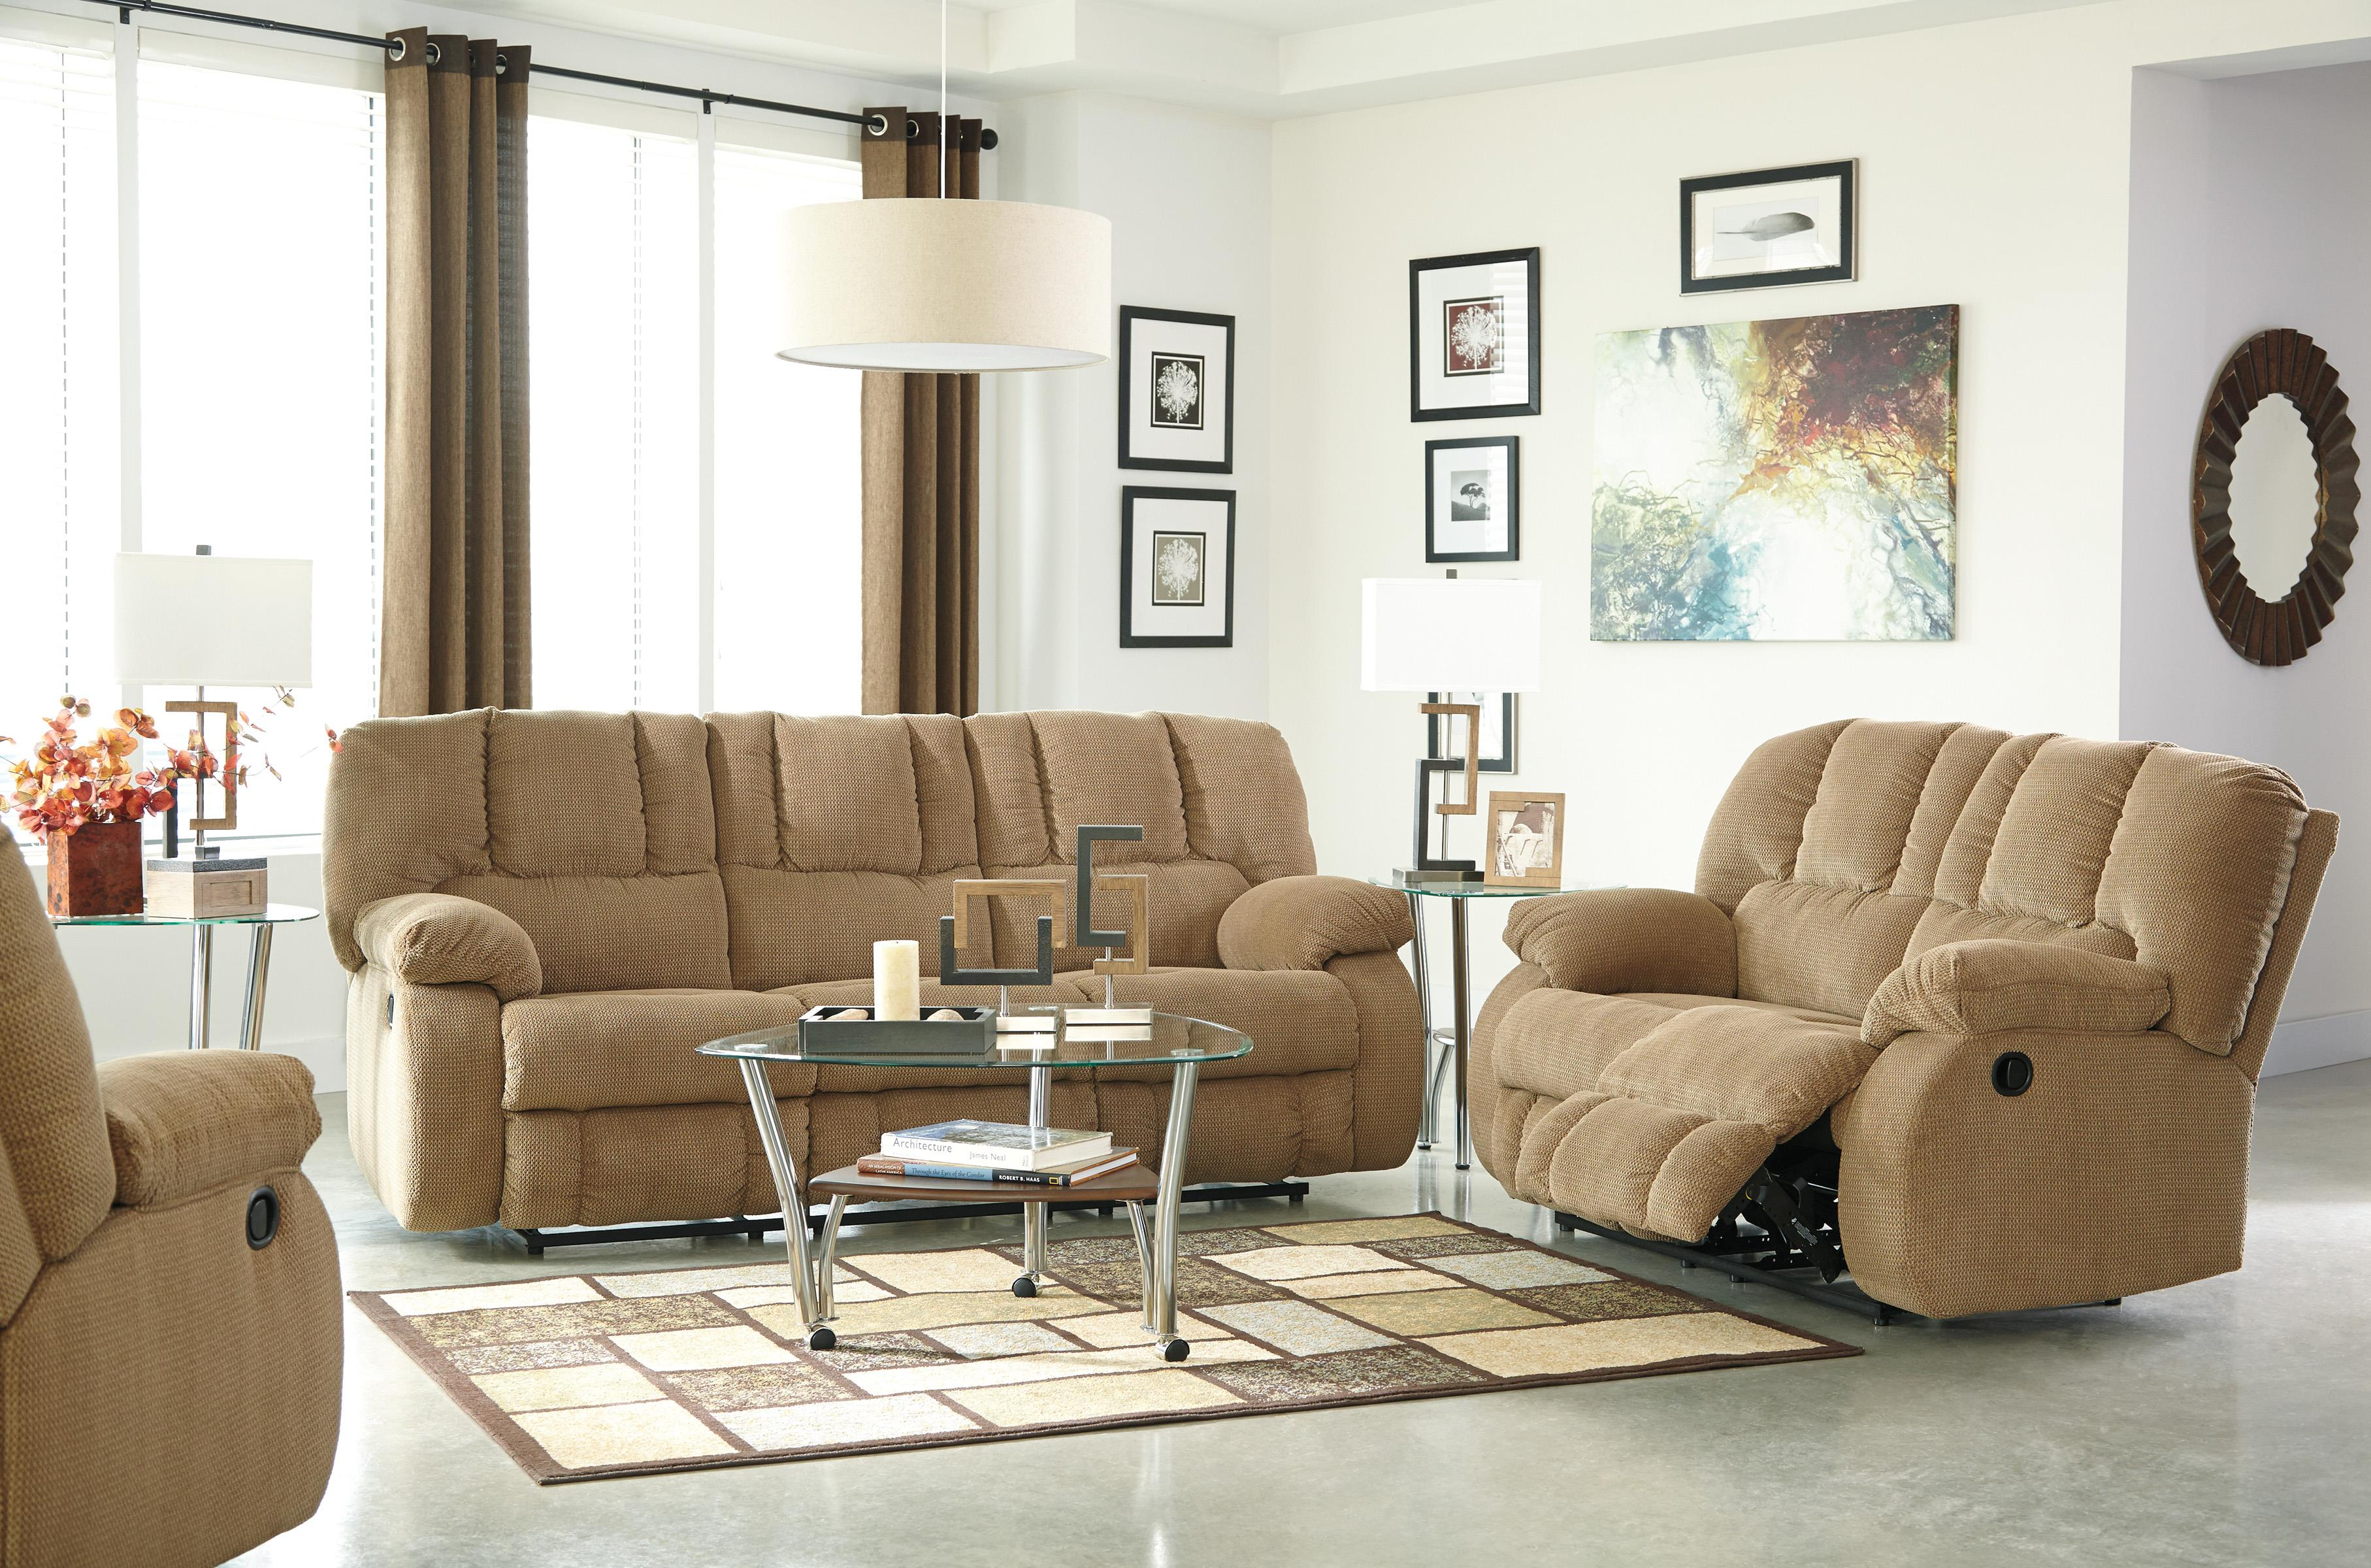 Benchcraft Roan Reclining Living Room Group - Item Number: 38602 Living Room Group 2